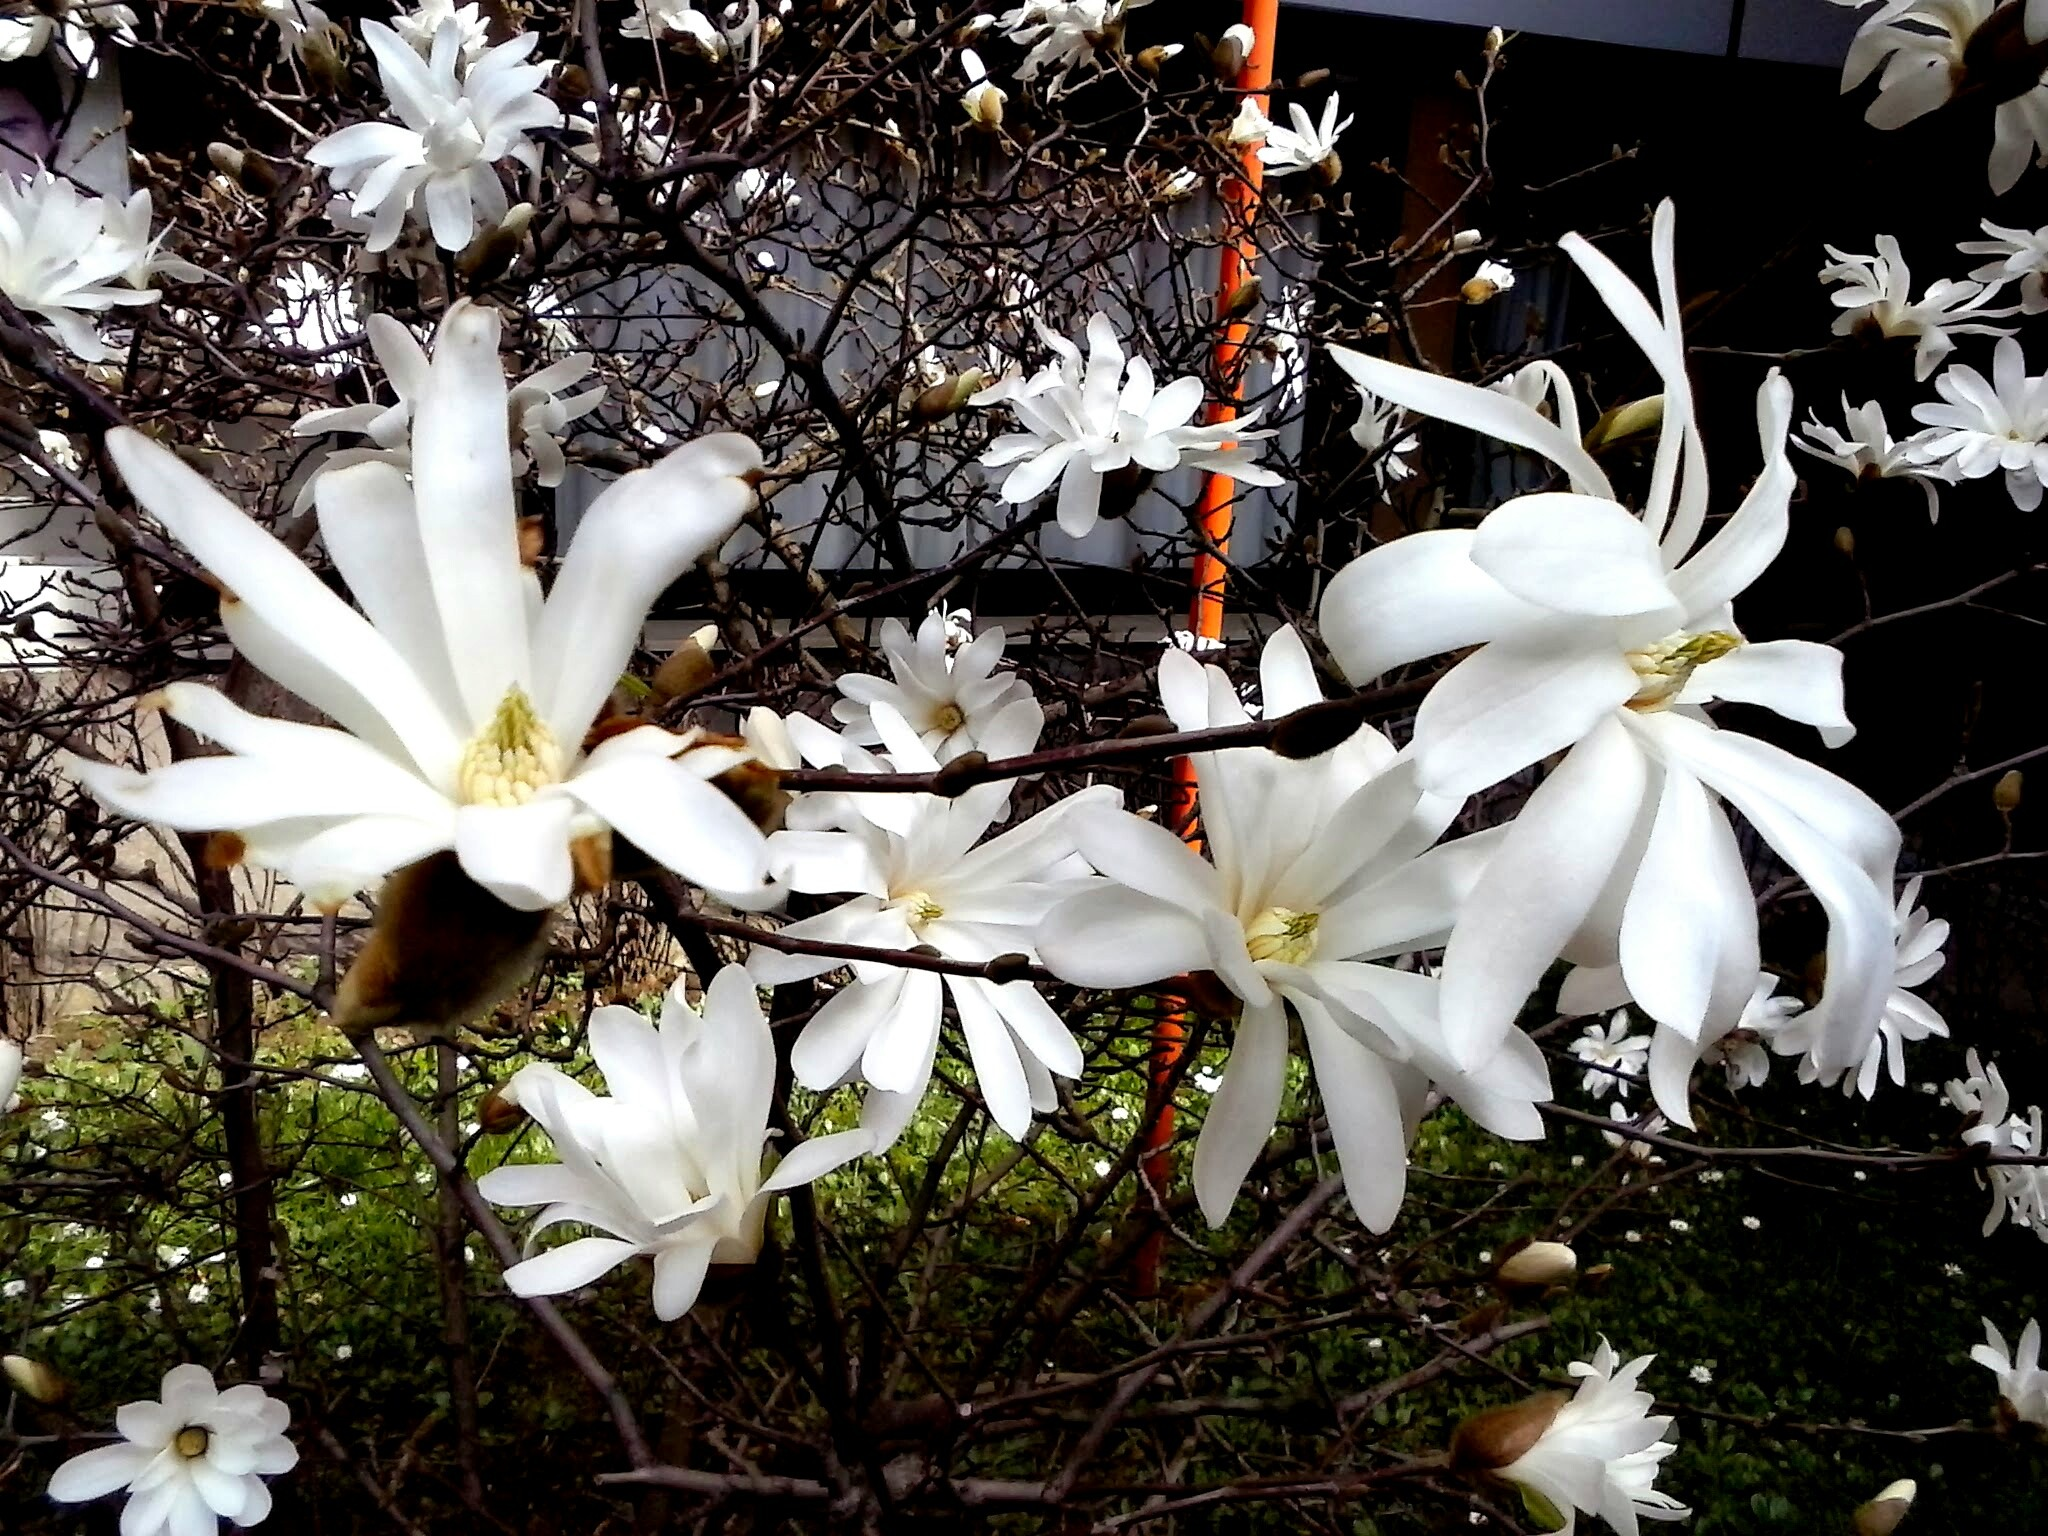 Magnolia stellata. Flowers again by Paolo Pasquali